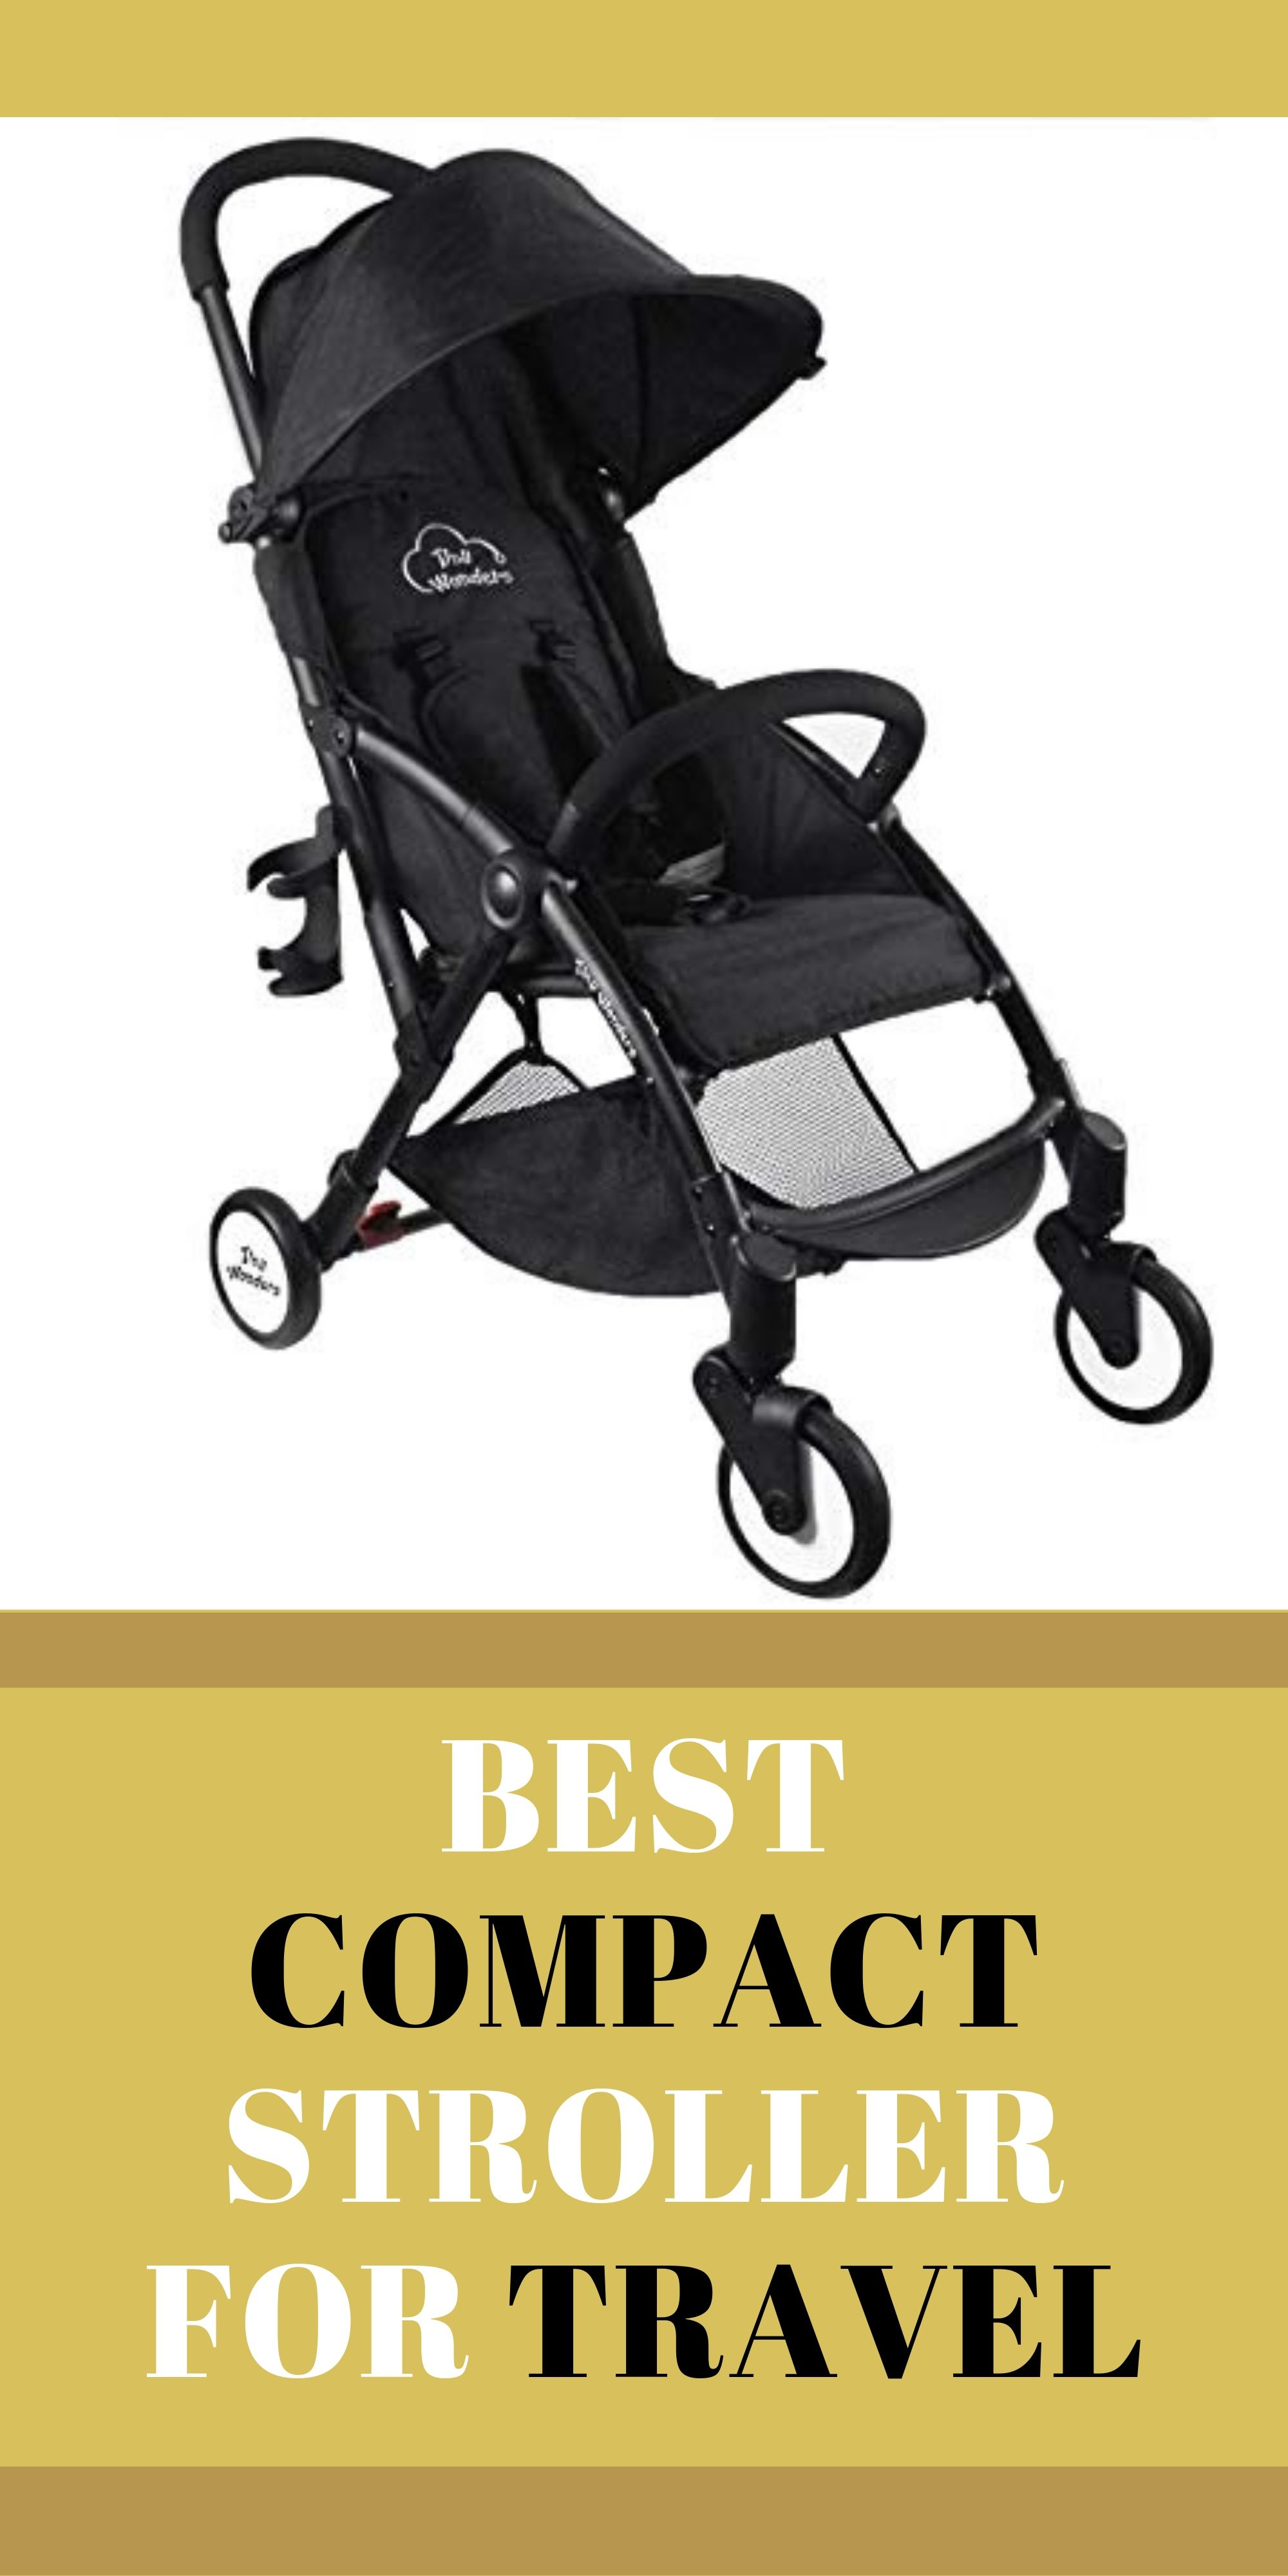 10 Best Compact Stroller For Travel Compact strollers